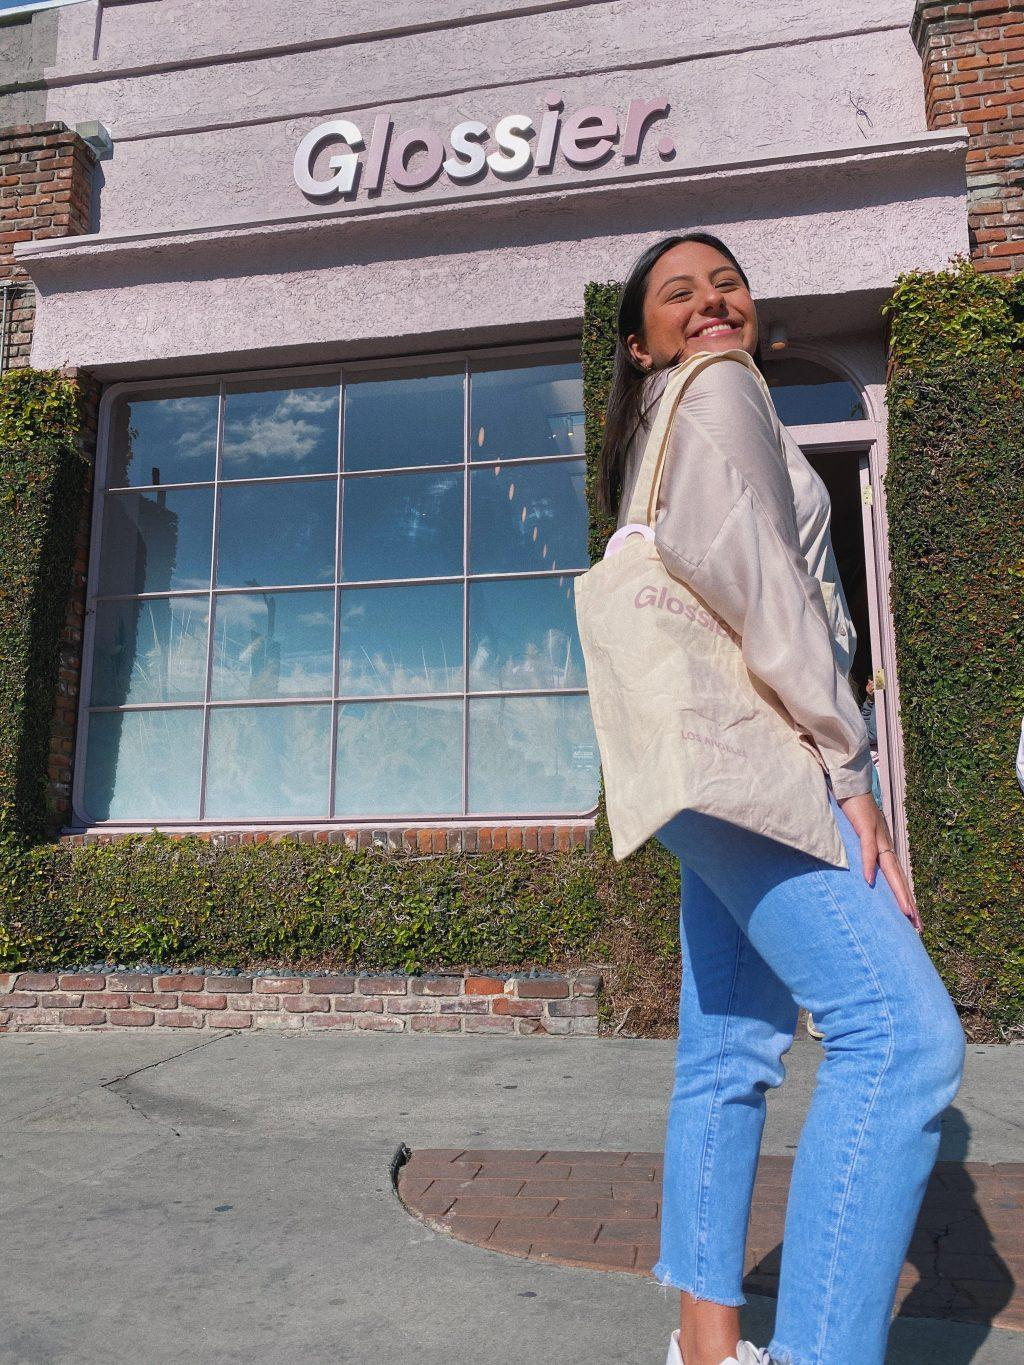 Hurtado pops a knee outside of the Glossier store on Melrose Place, a neighborhood in L.A.